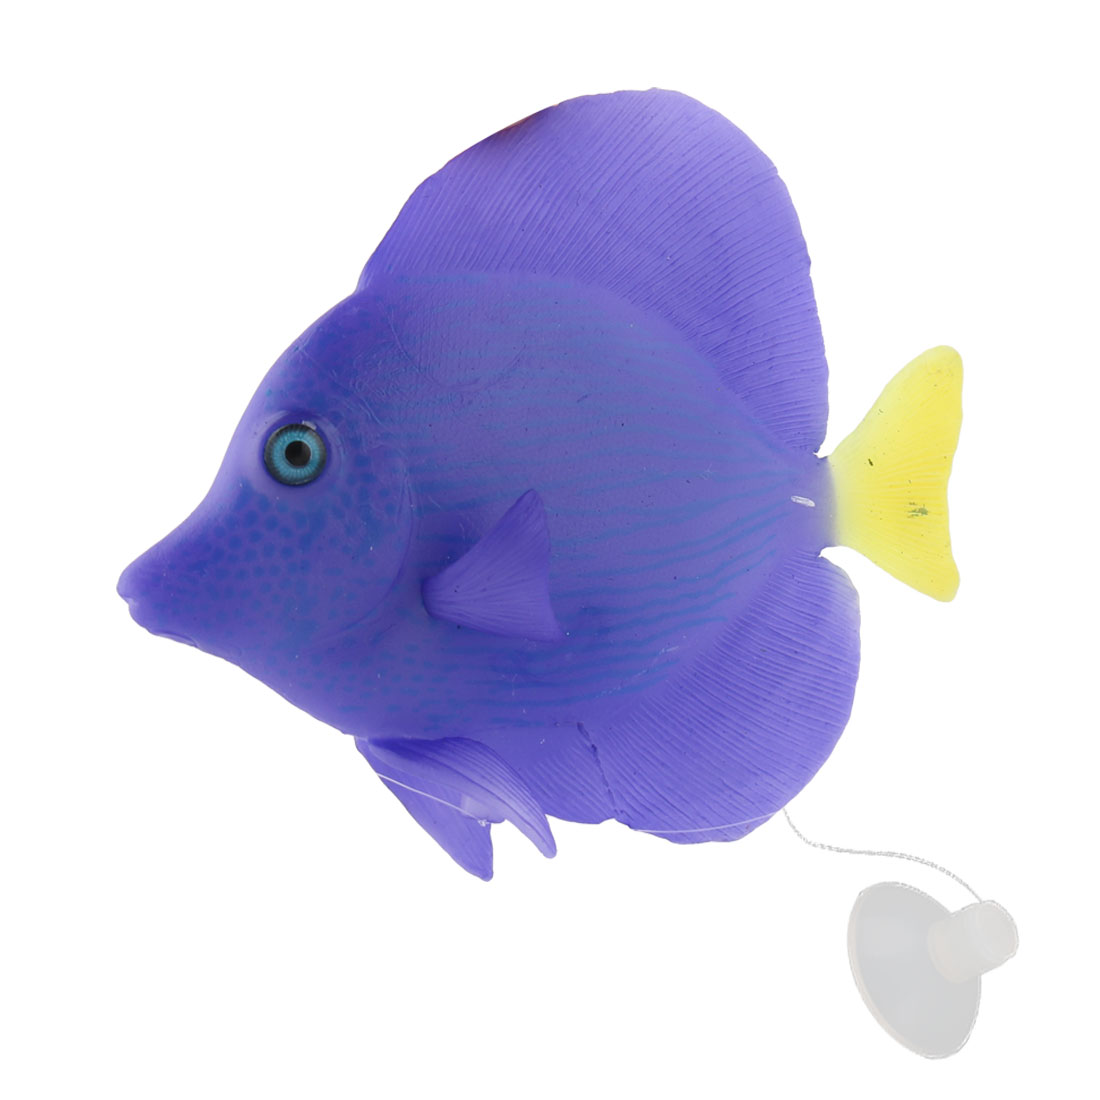 Aquarium Floating Artificial Suction Cup Install Glowing Tropical Fish Animal Decoration Blue-purple